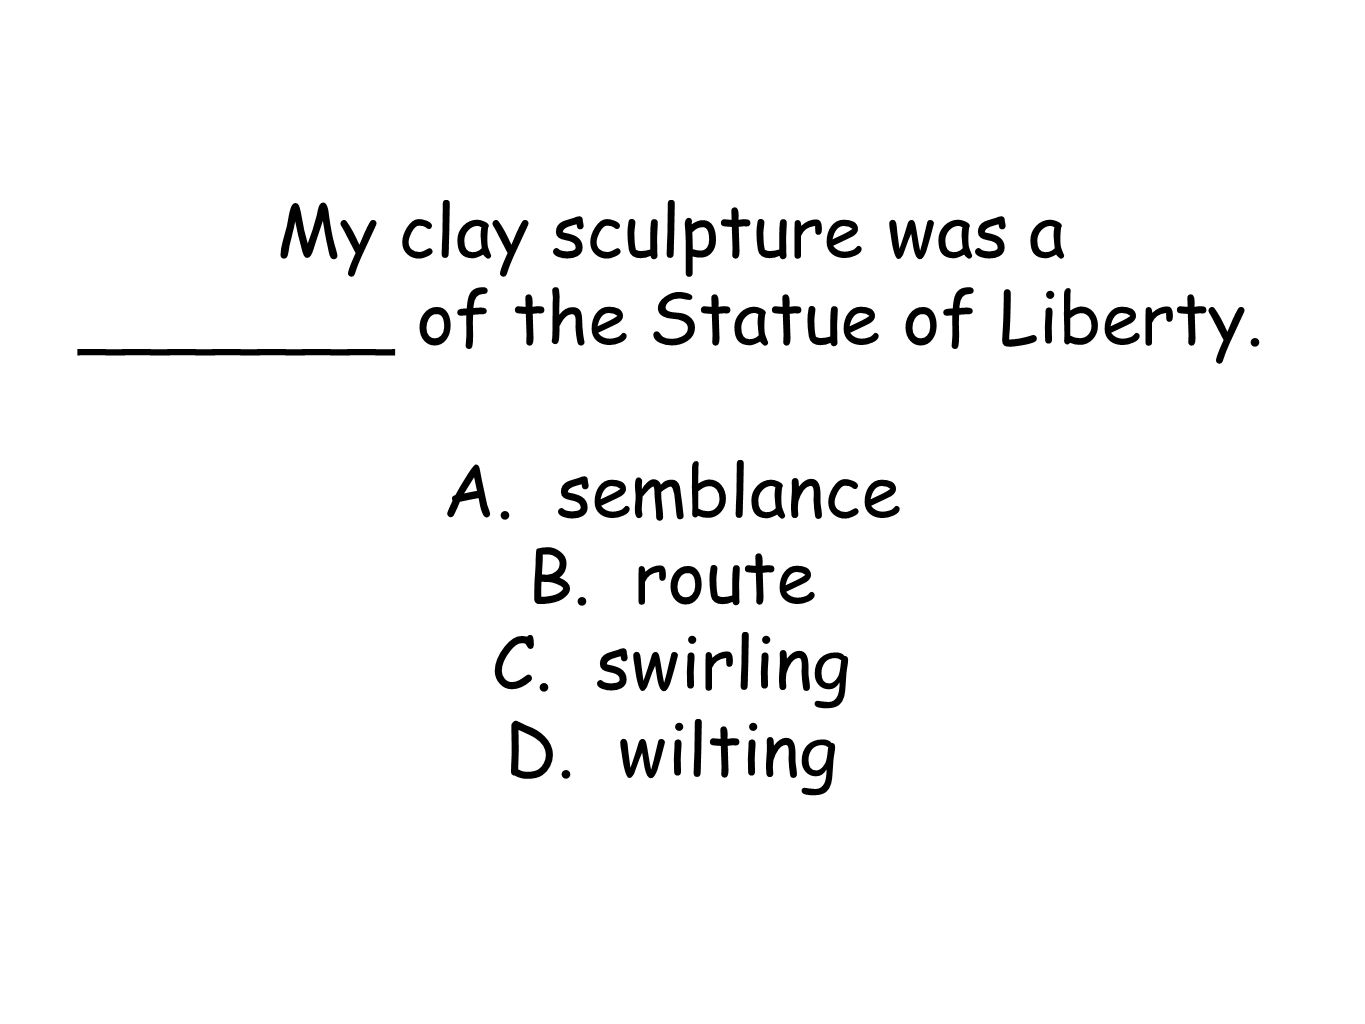 My clay sculpture was a _______ of the Statue of Liberty.